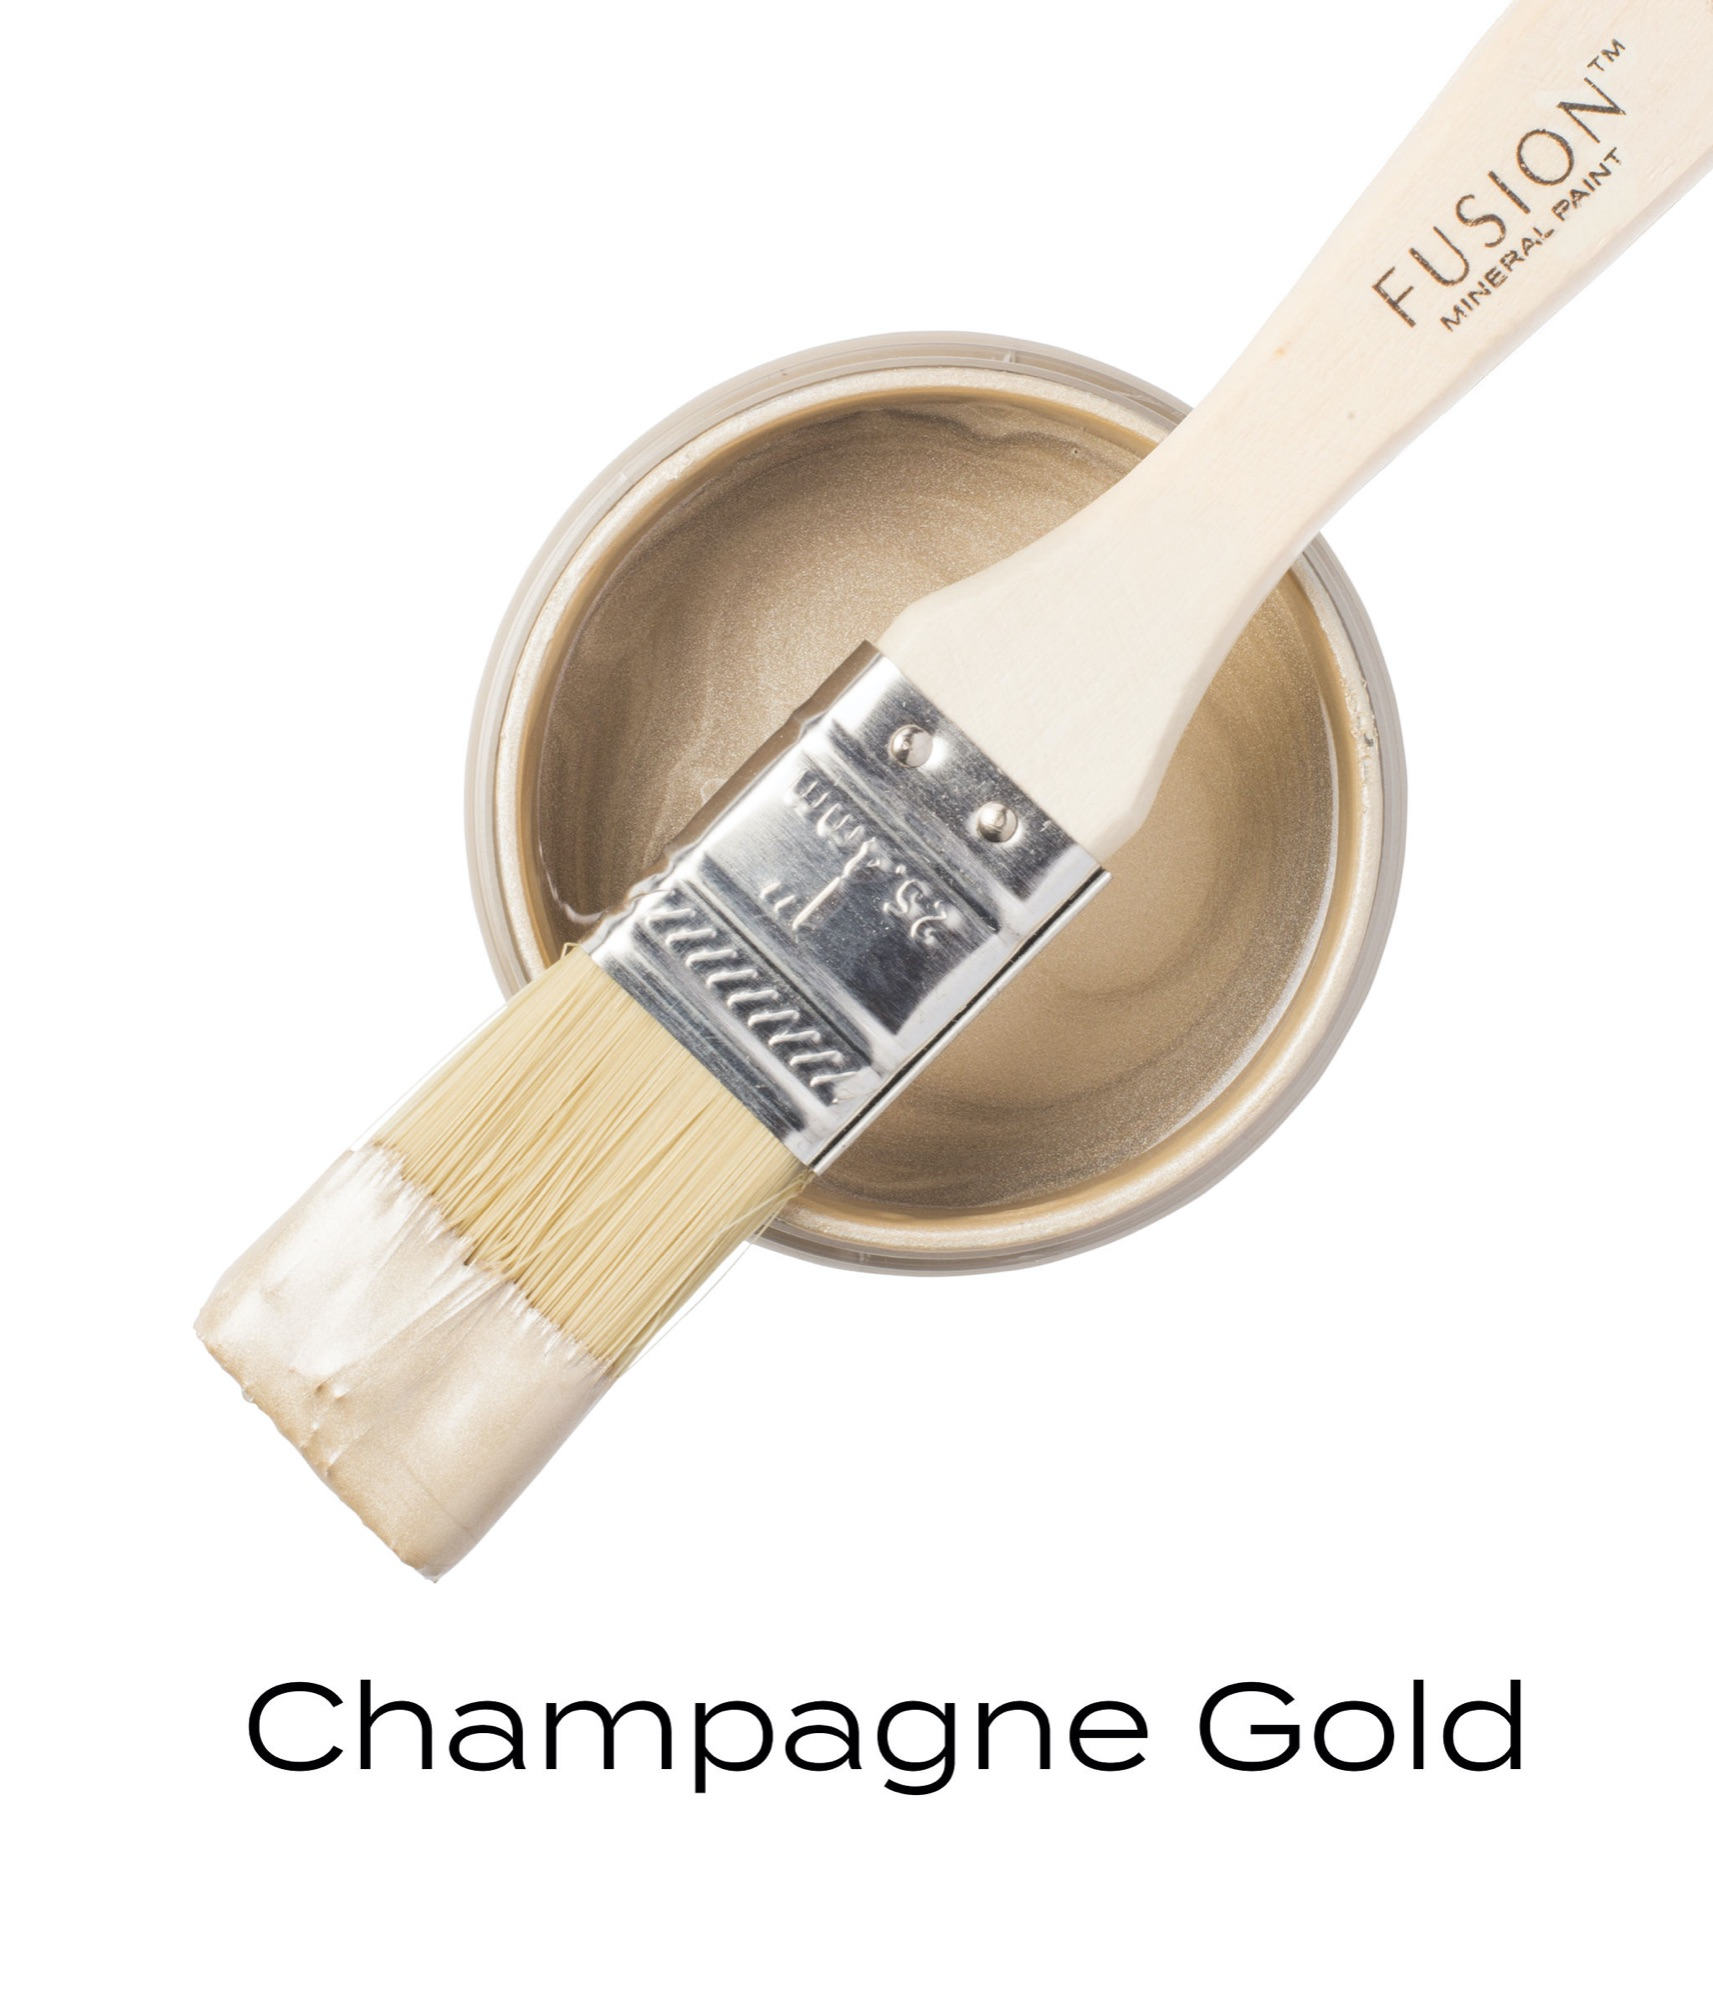 T1CHAMPAGNEGOLD